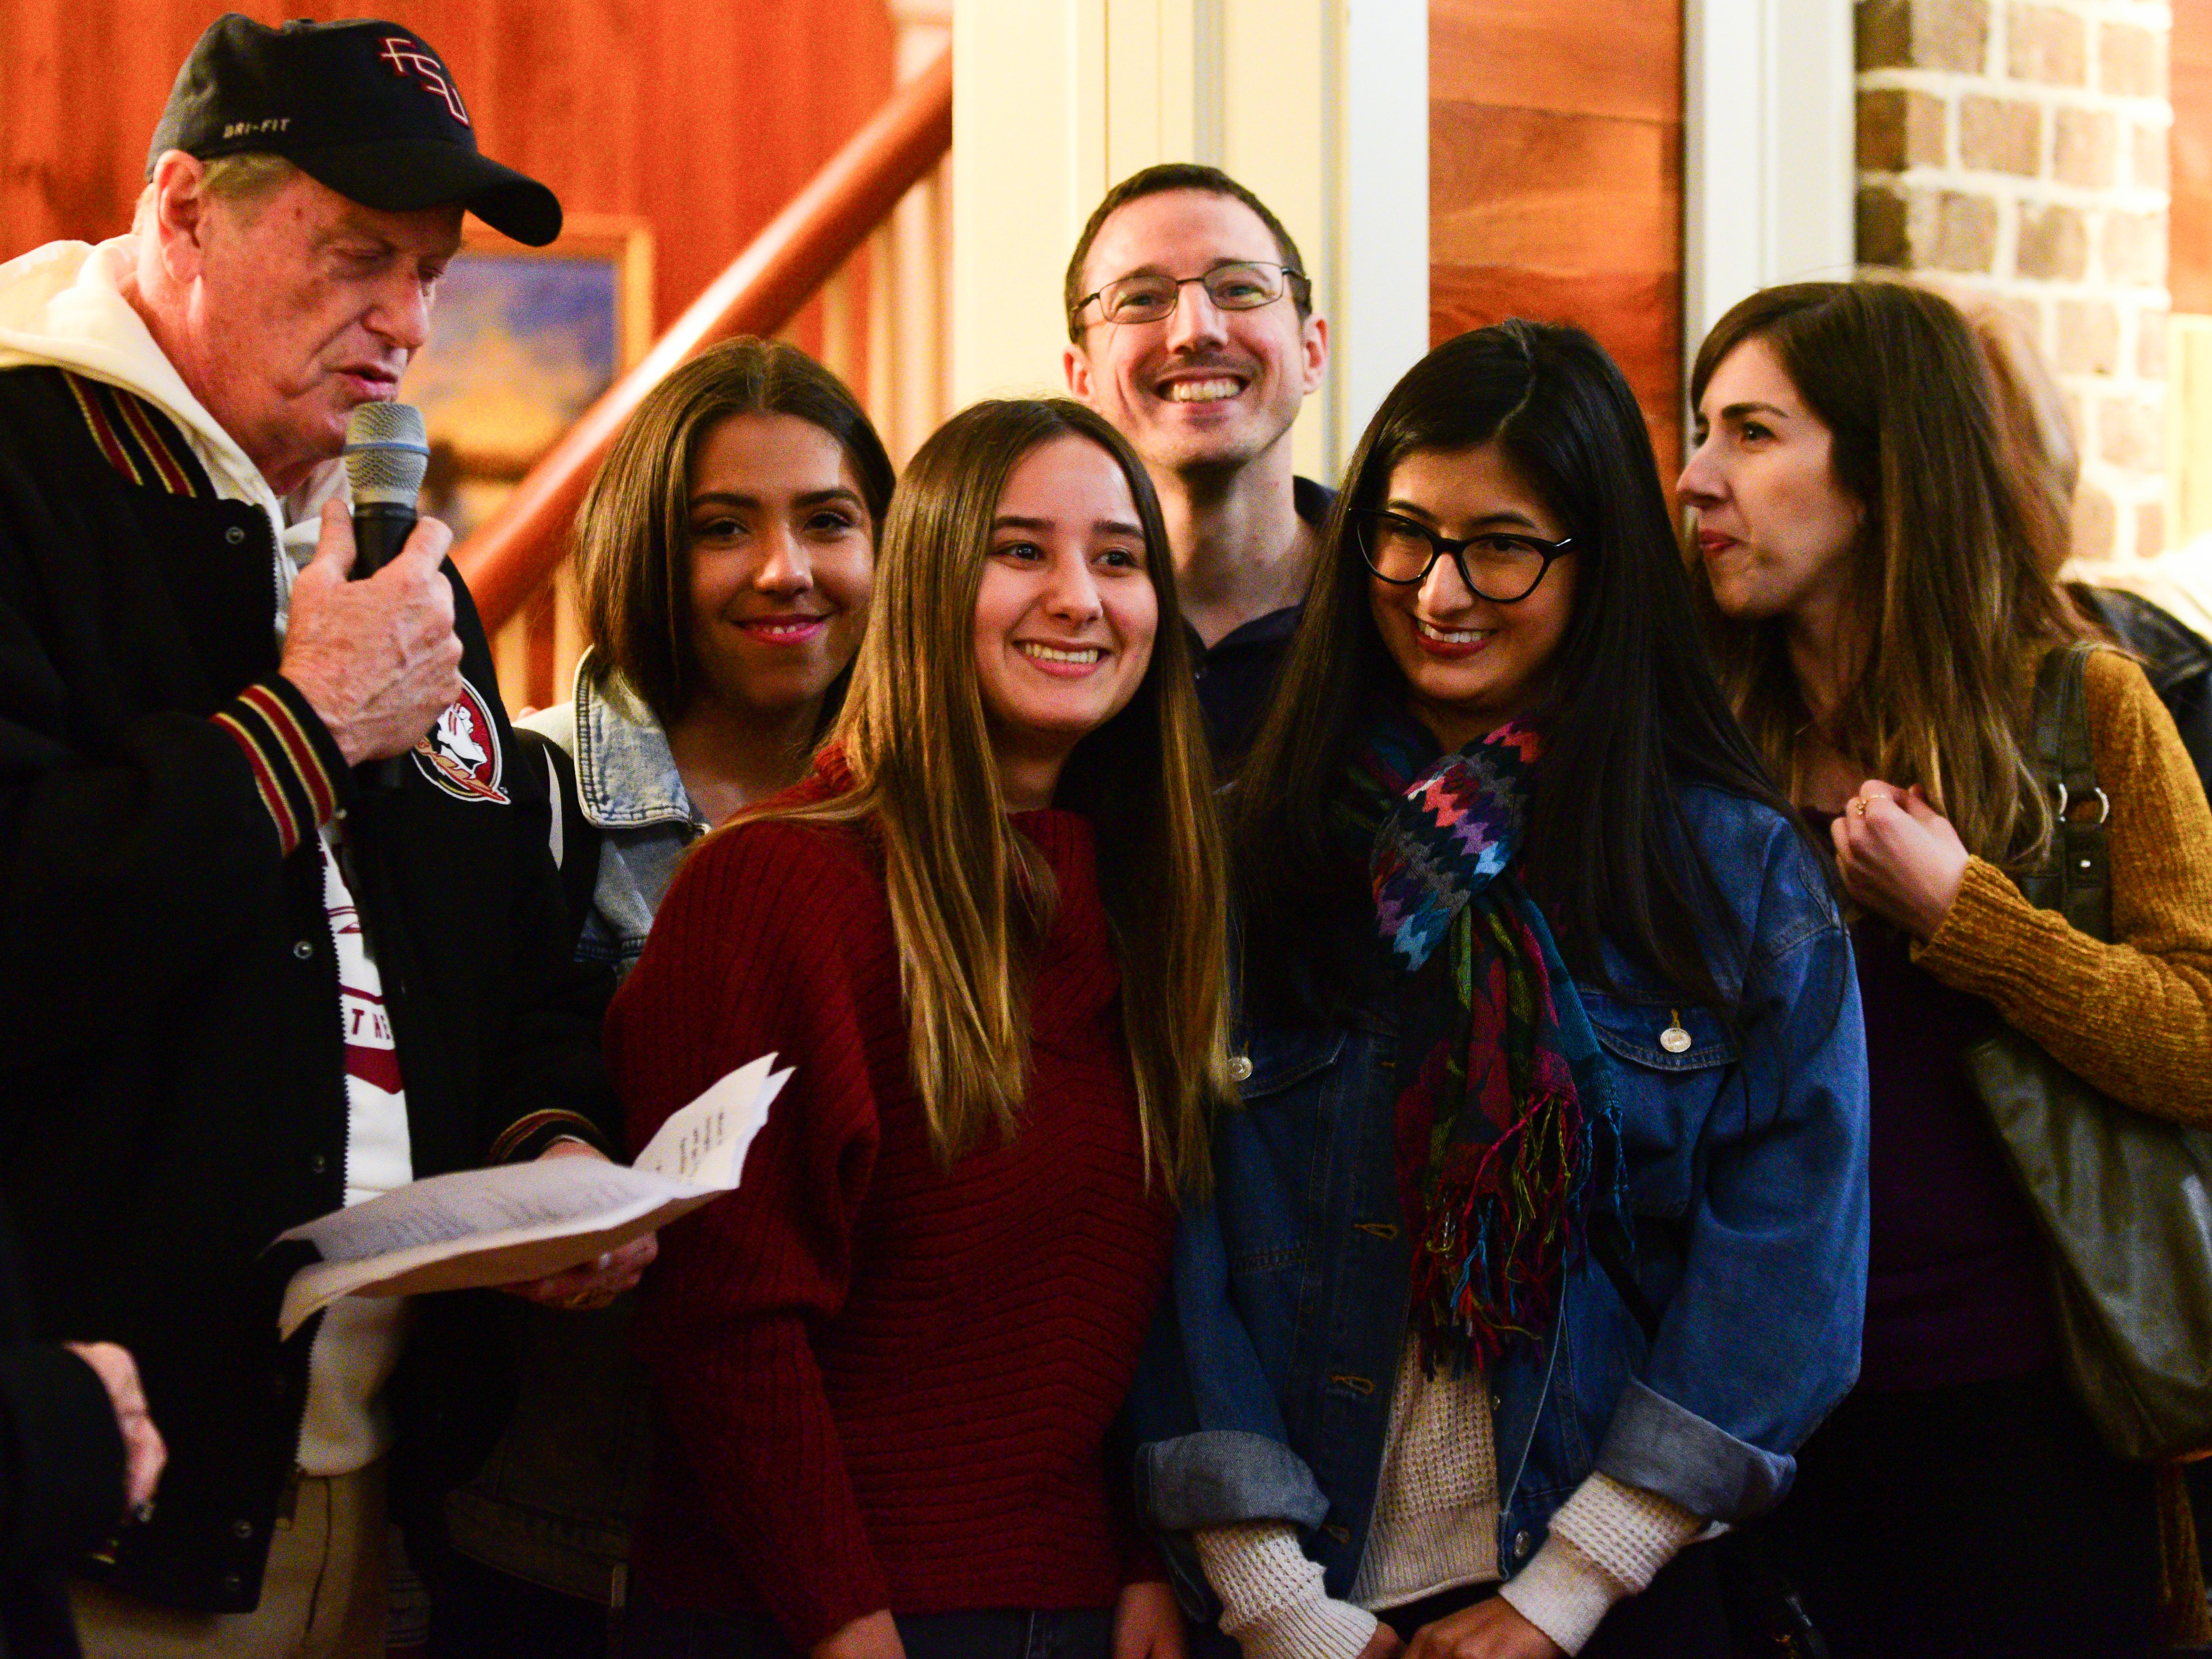 Hot Yoga shooting survivors Sabrina O'Dette, second from left, Daniela Garcia Albalat, center left, Daniela Archila, center right, and Sarah Hodges, right, share a laugh together with Josh Quick, center, and FSU President John Thrasher, right, at the President's House Monday night.